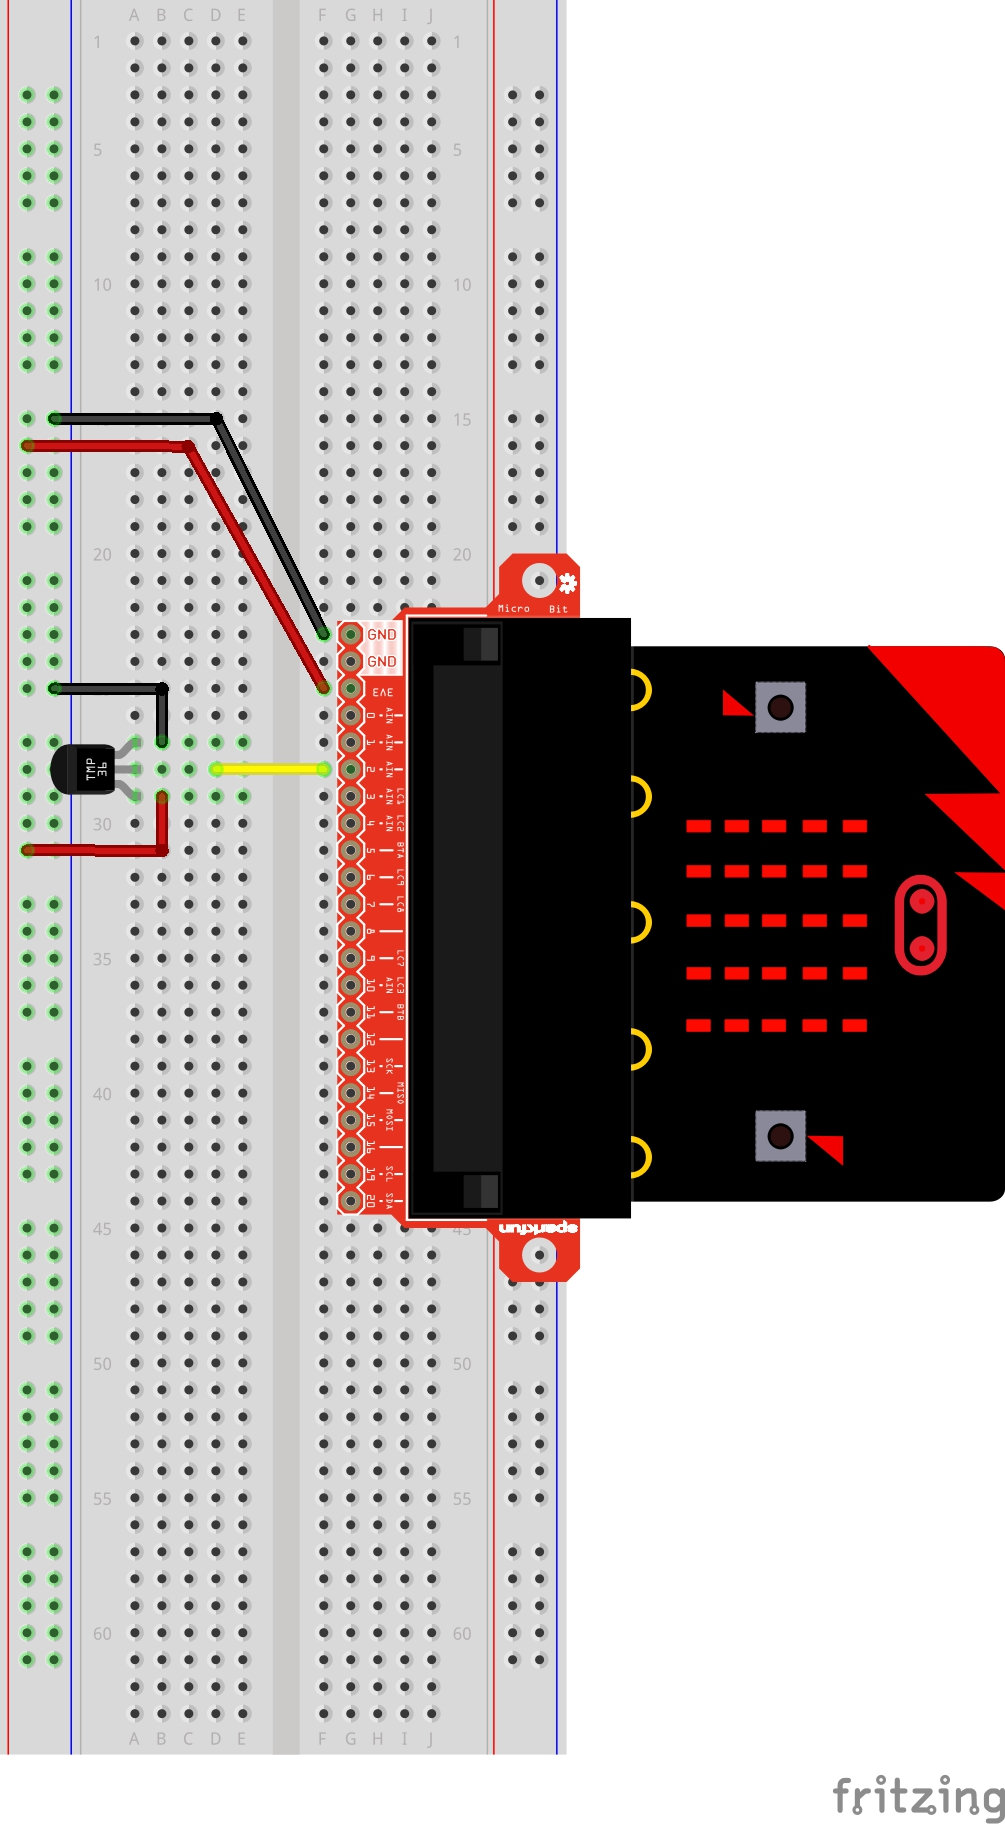 Getting Started With Micropython And The Sparkfun Inventor